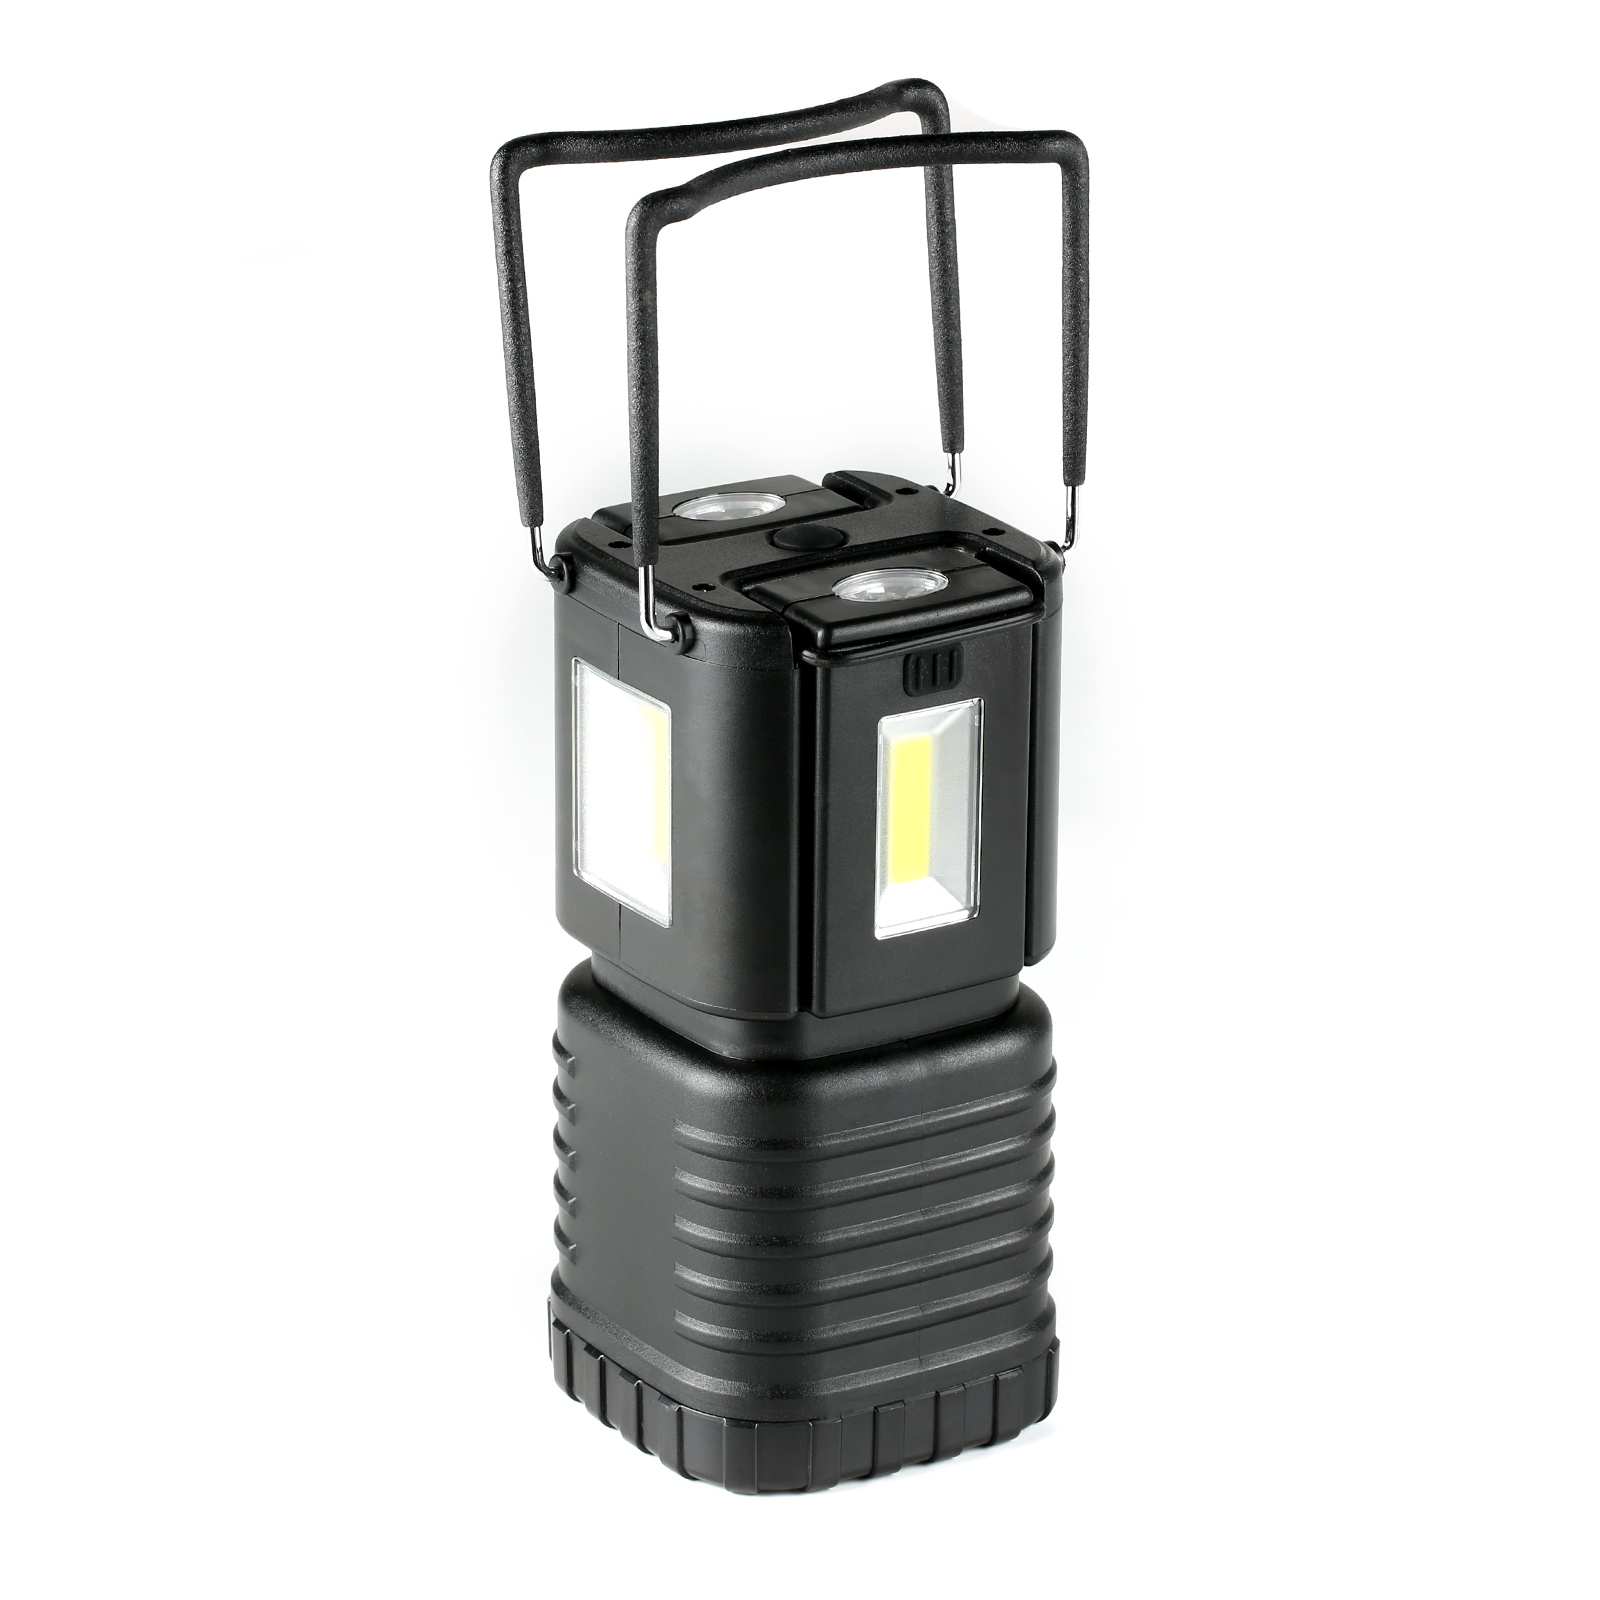 CSL LED Camping-Leuchte Energieeffizienzklasse A 2 abnehmbare Taschenlampen LED Campinglampe // Laterne